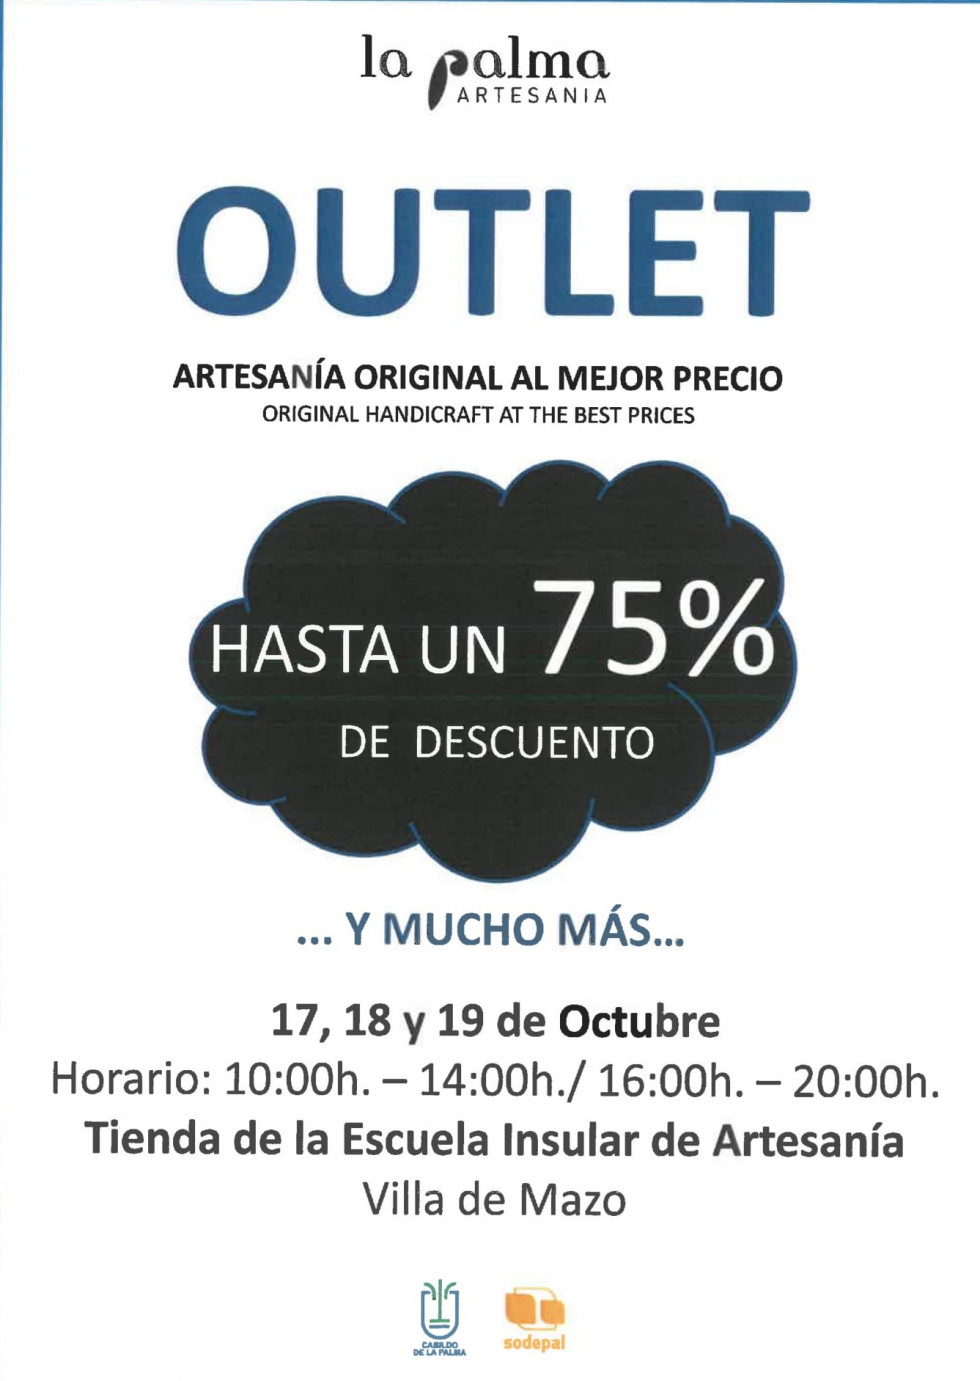 CARTEL OUTLET ARTESANIA 19 1